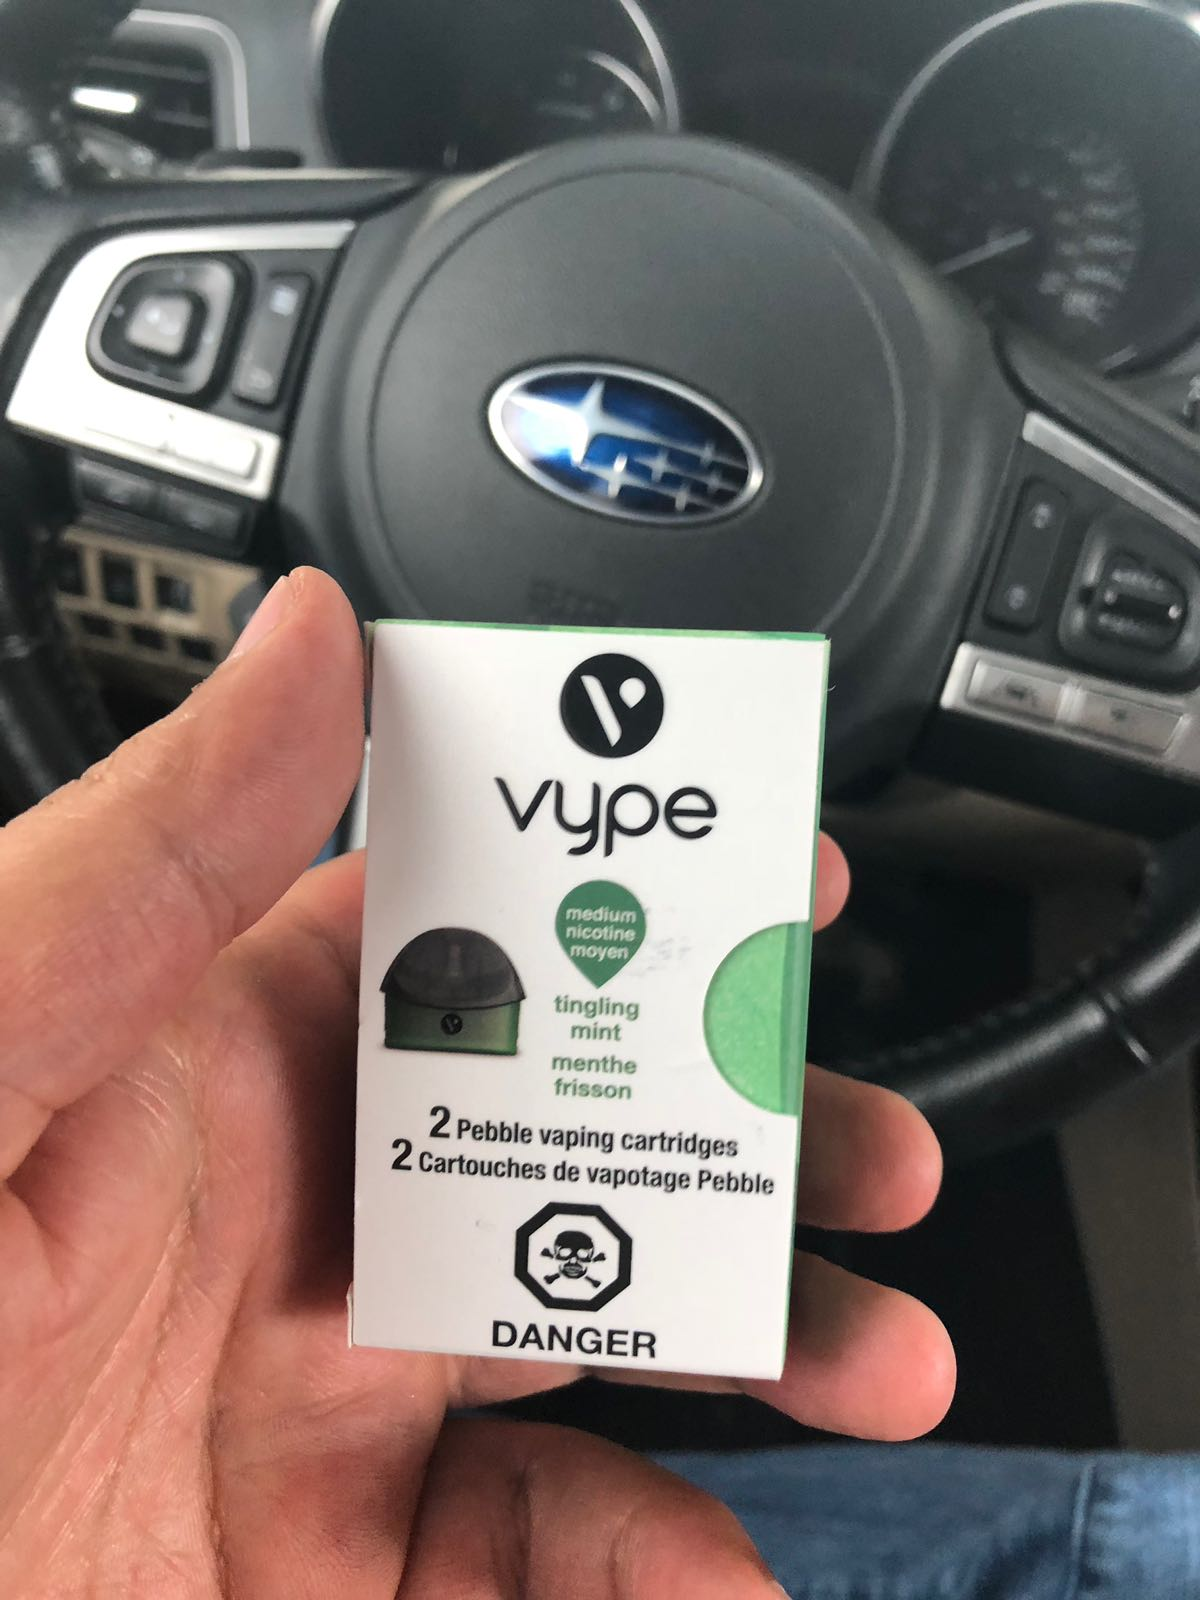 29489 - Vype cigs Canada